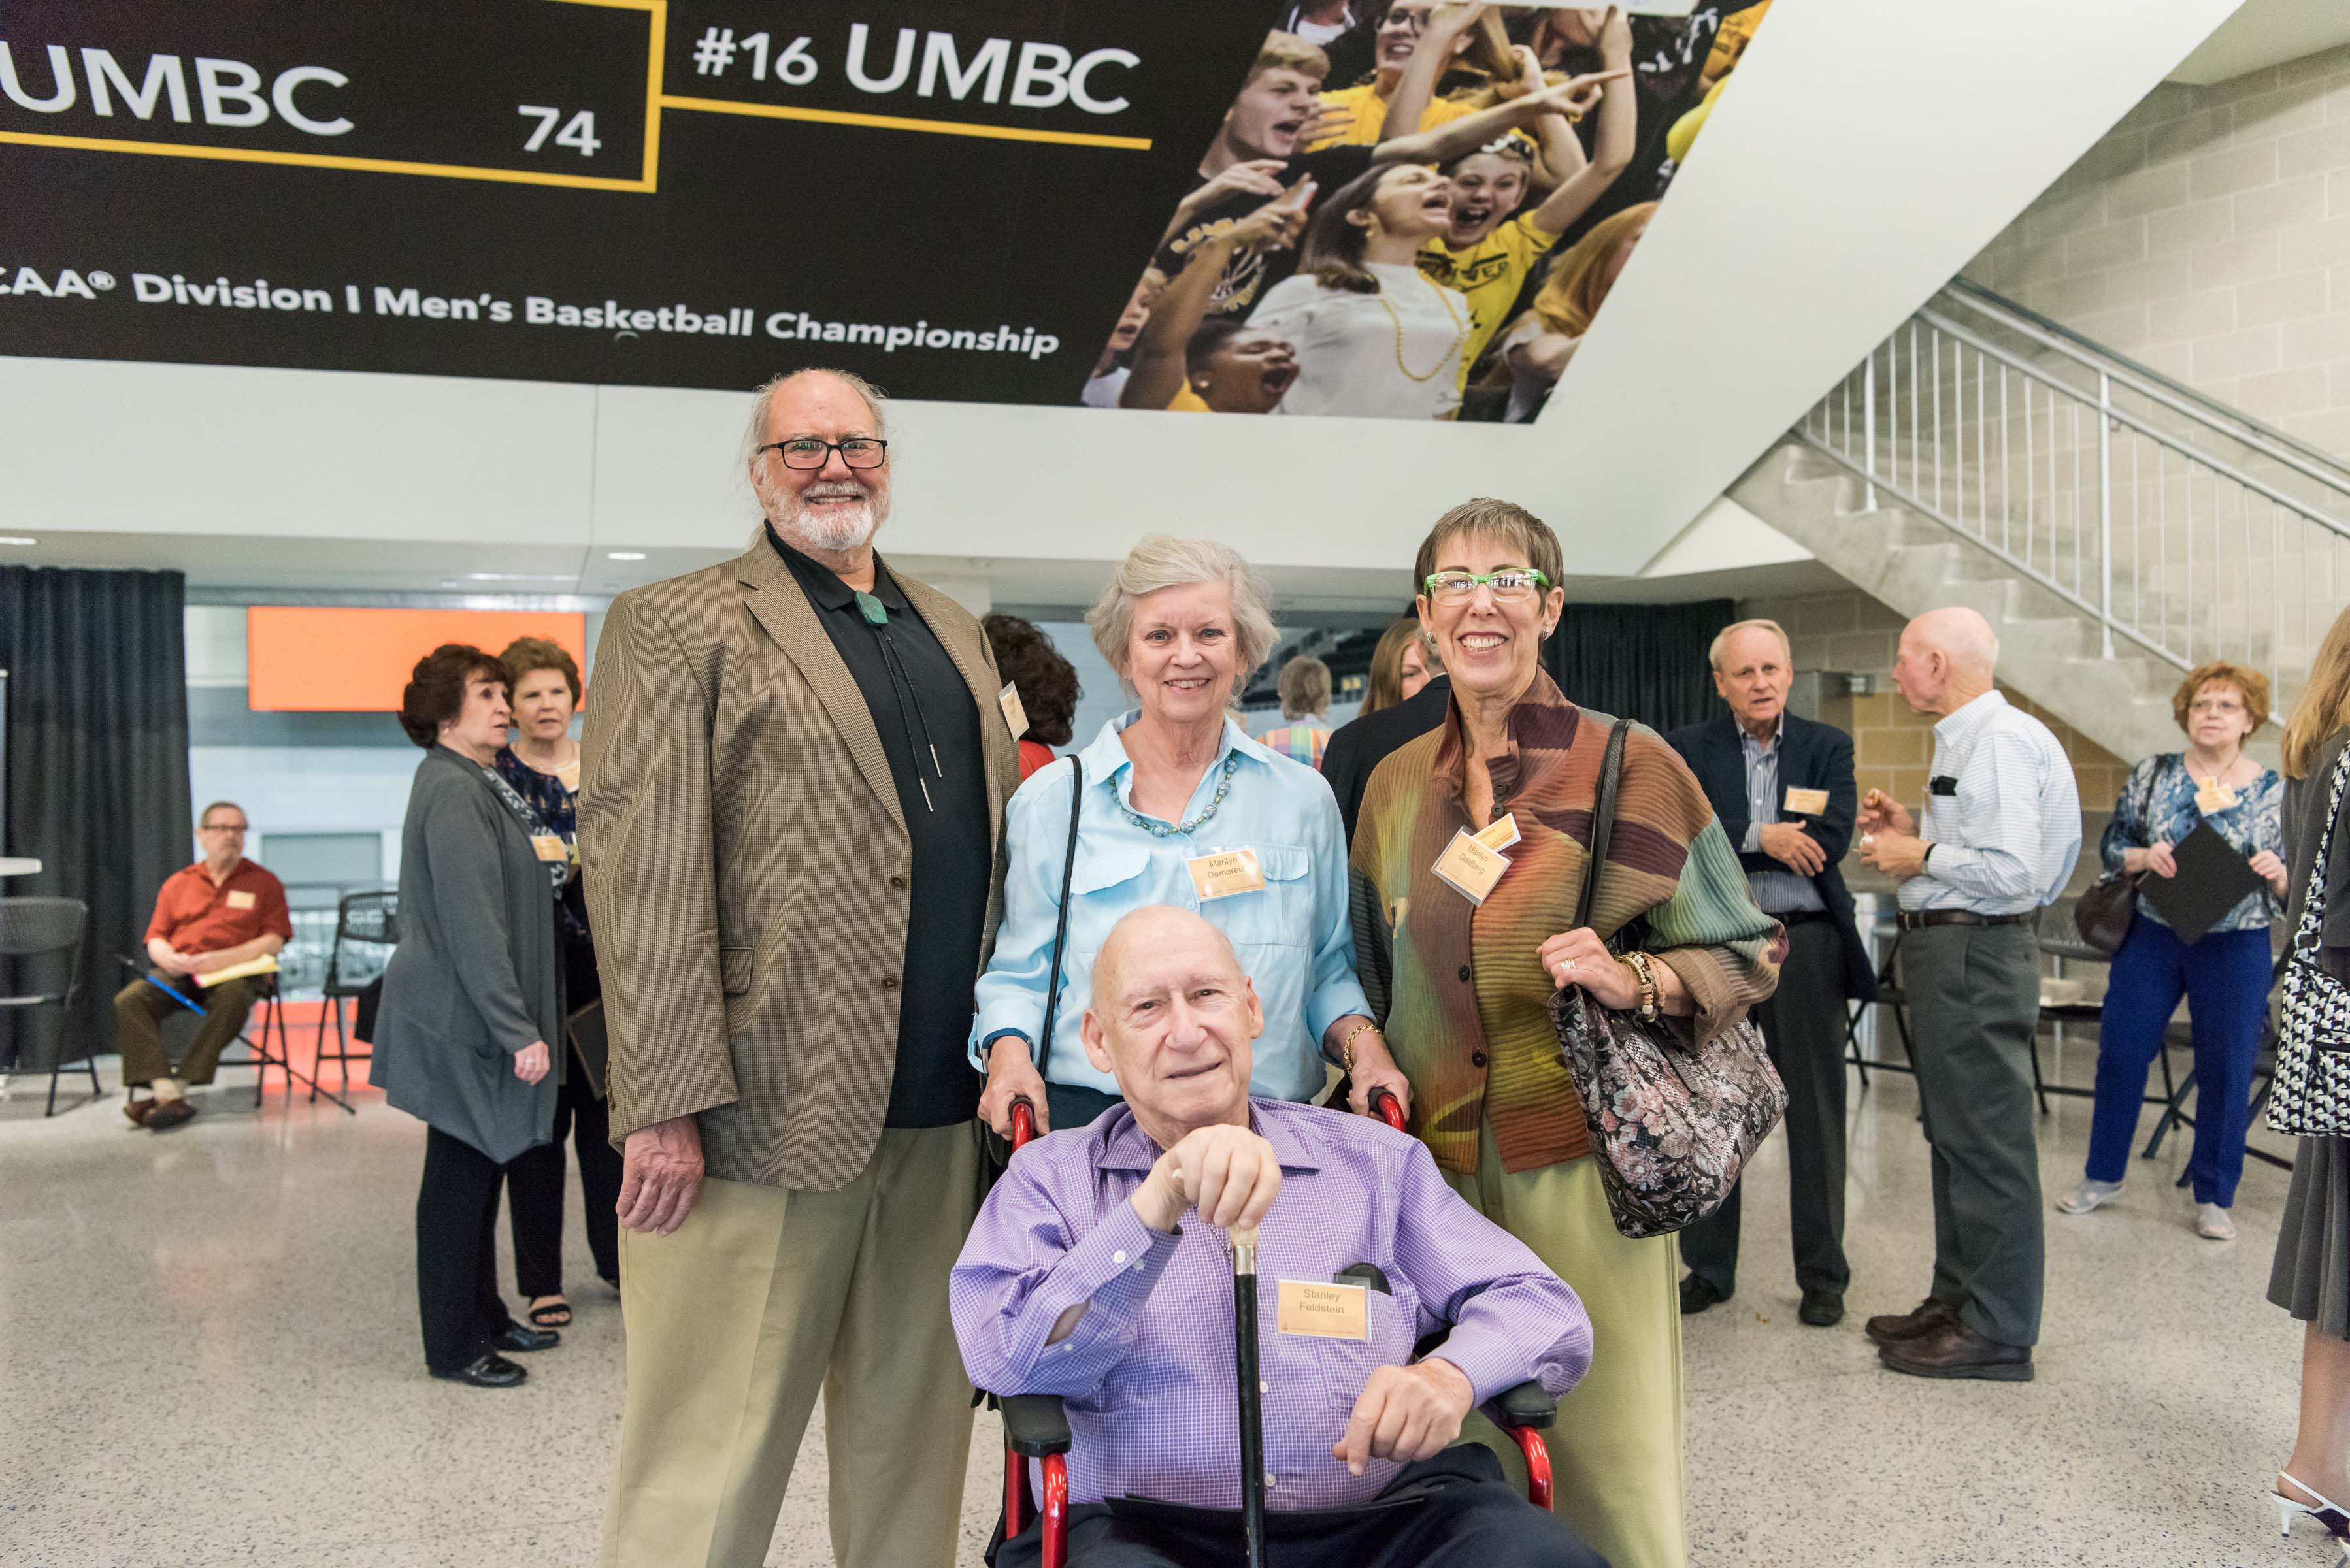 Group of four pose together UMBC sign behind them at Wisdom Institute lunch